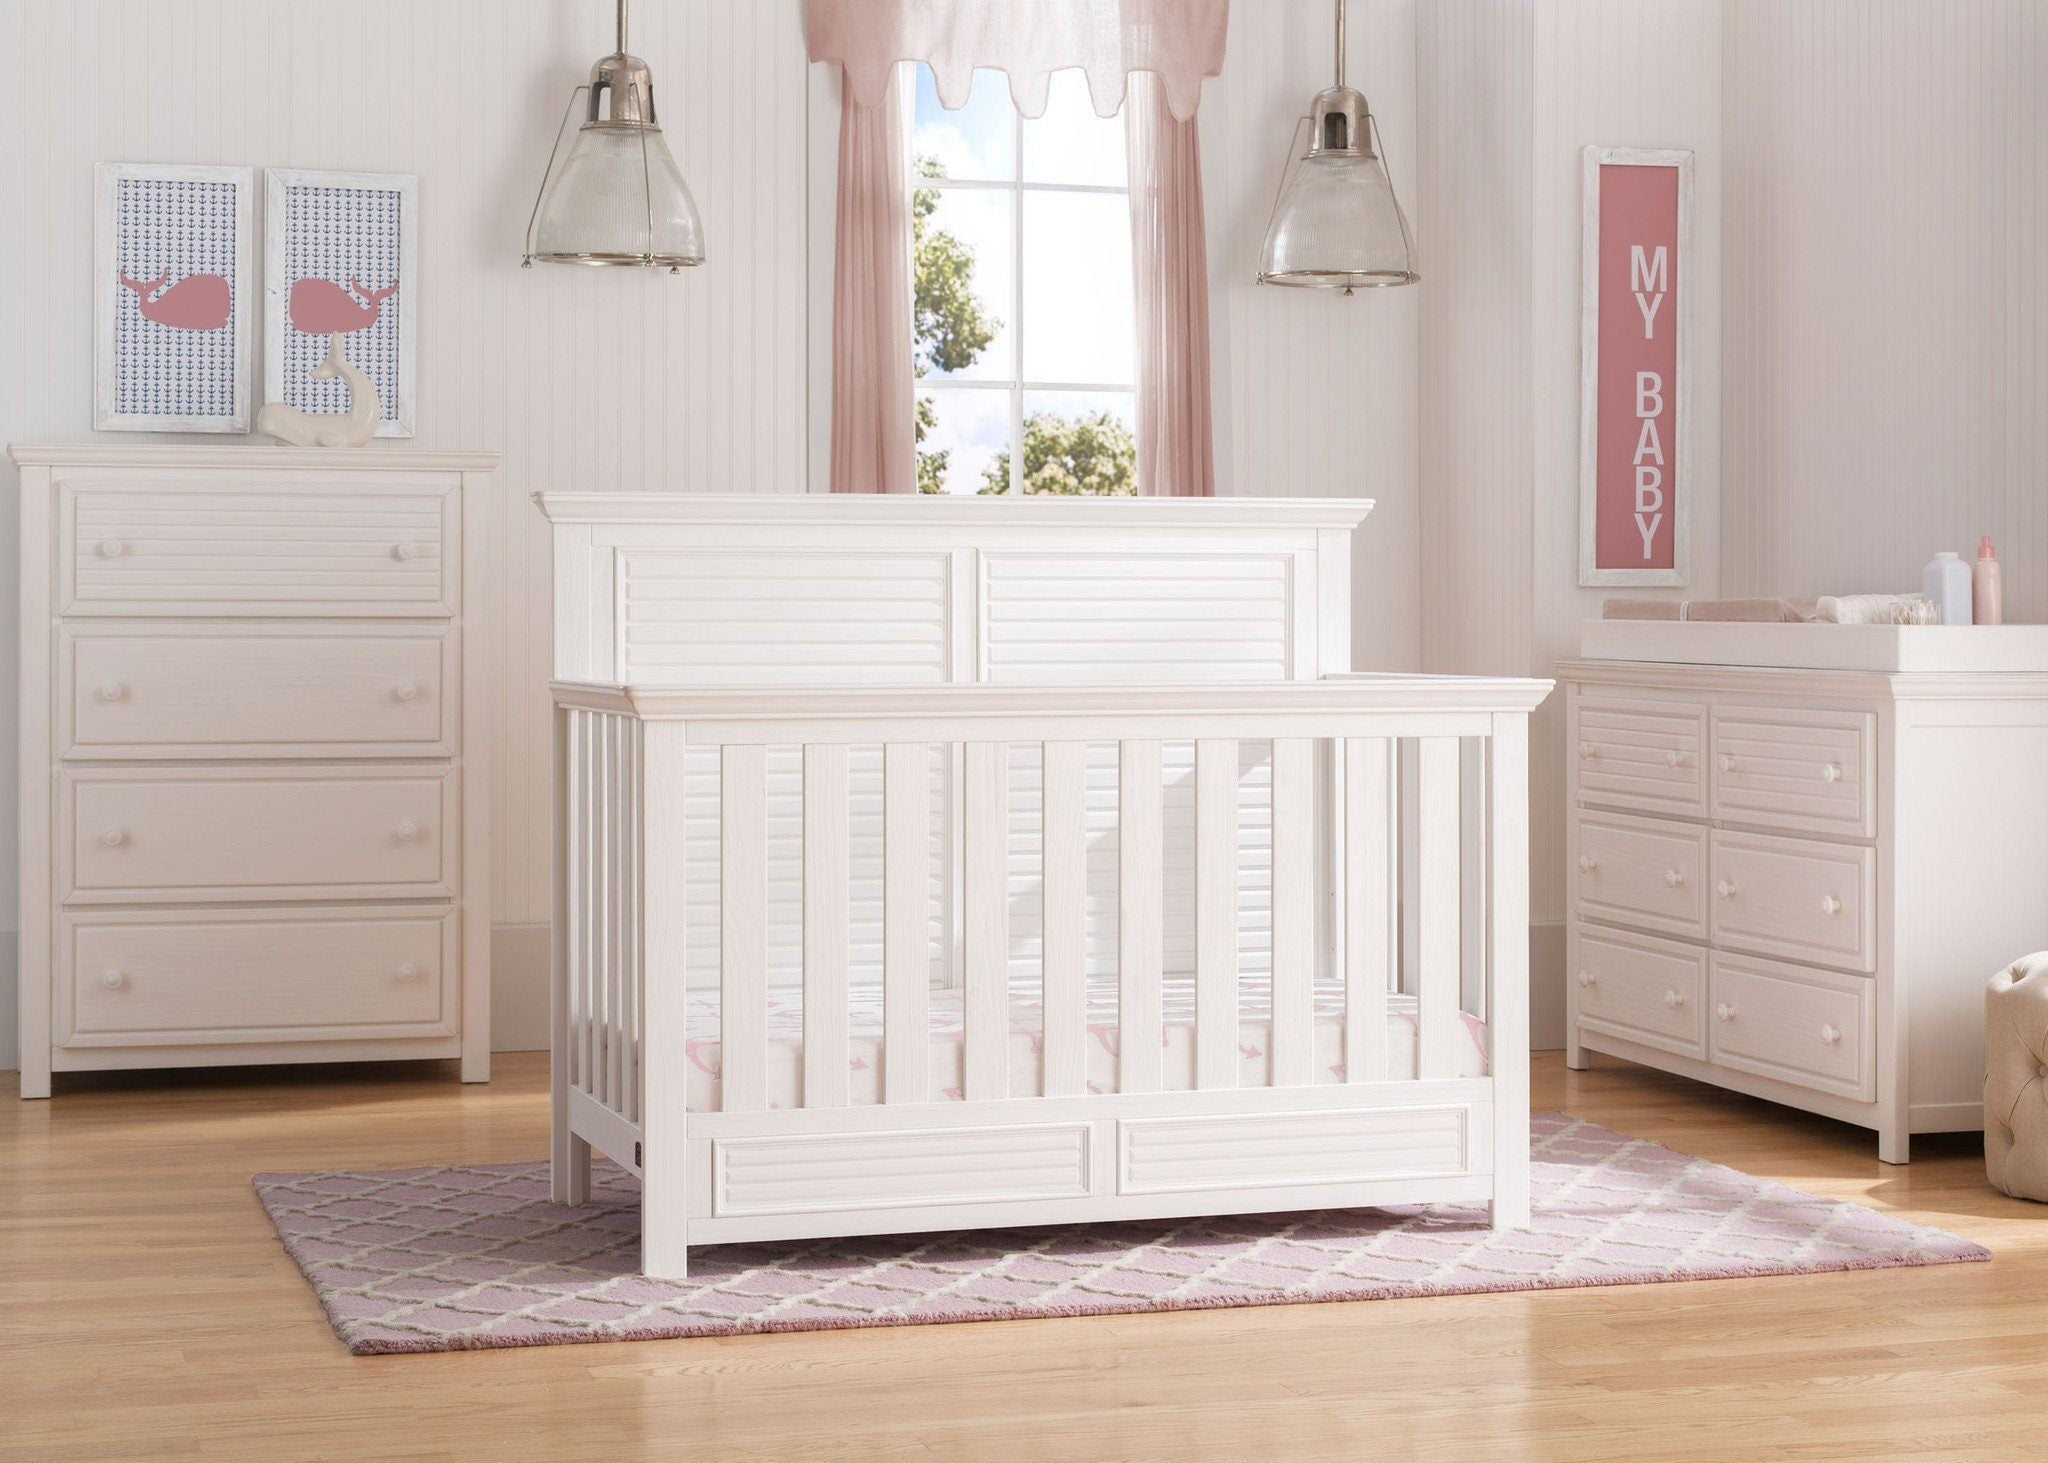 Simmons Kids Rustic Bianca (170) Oakmont Crib 'N' More Room view a0a